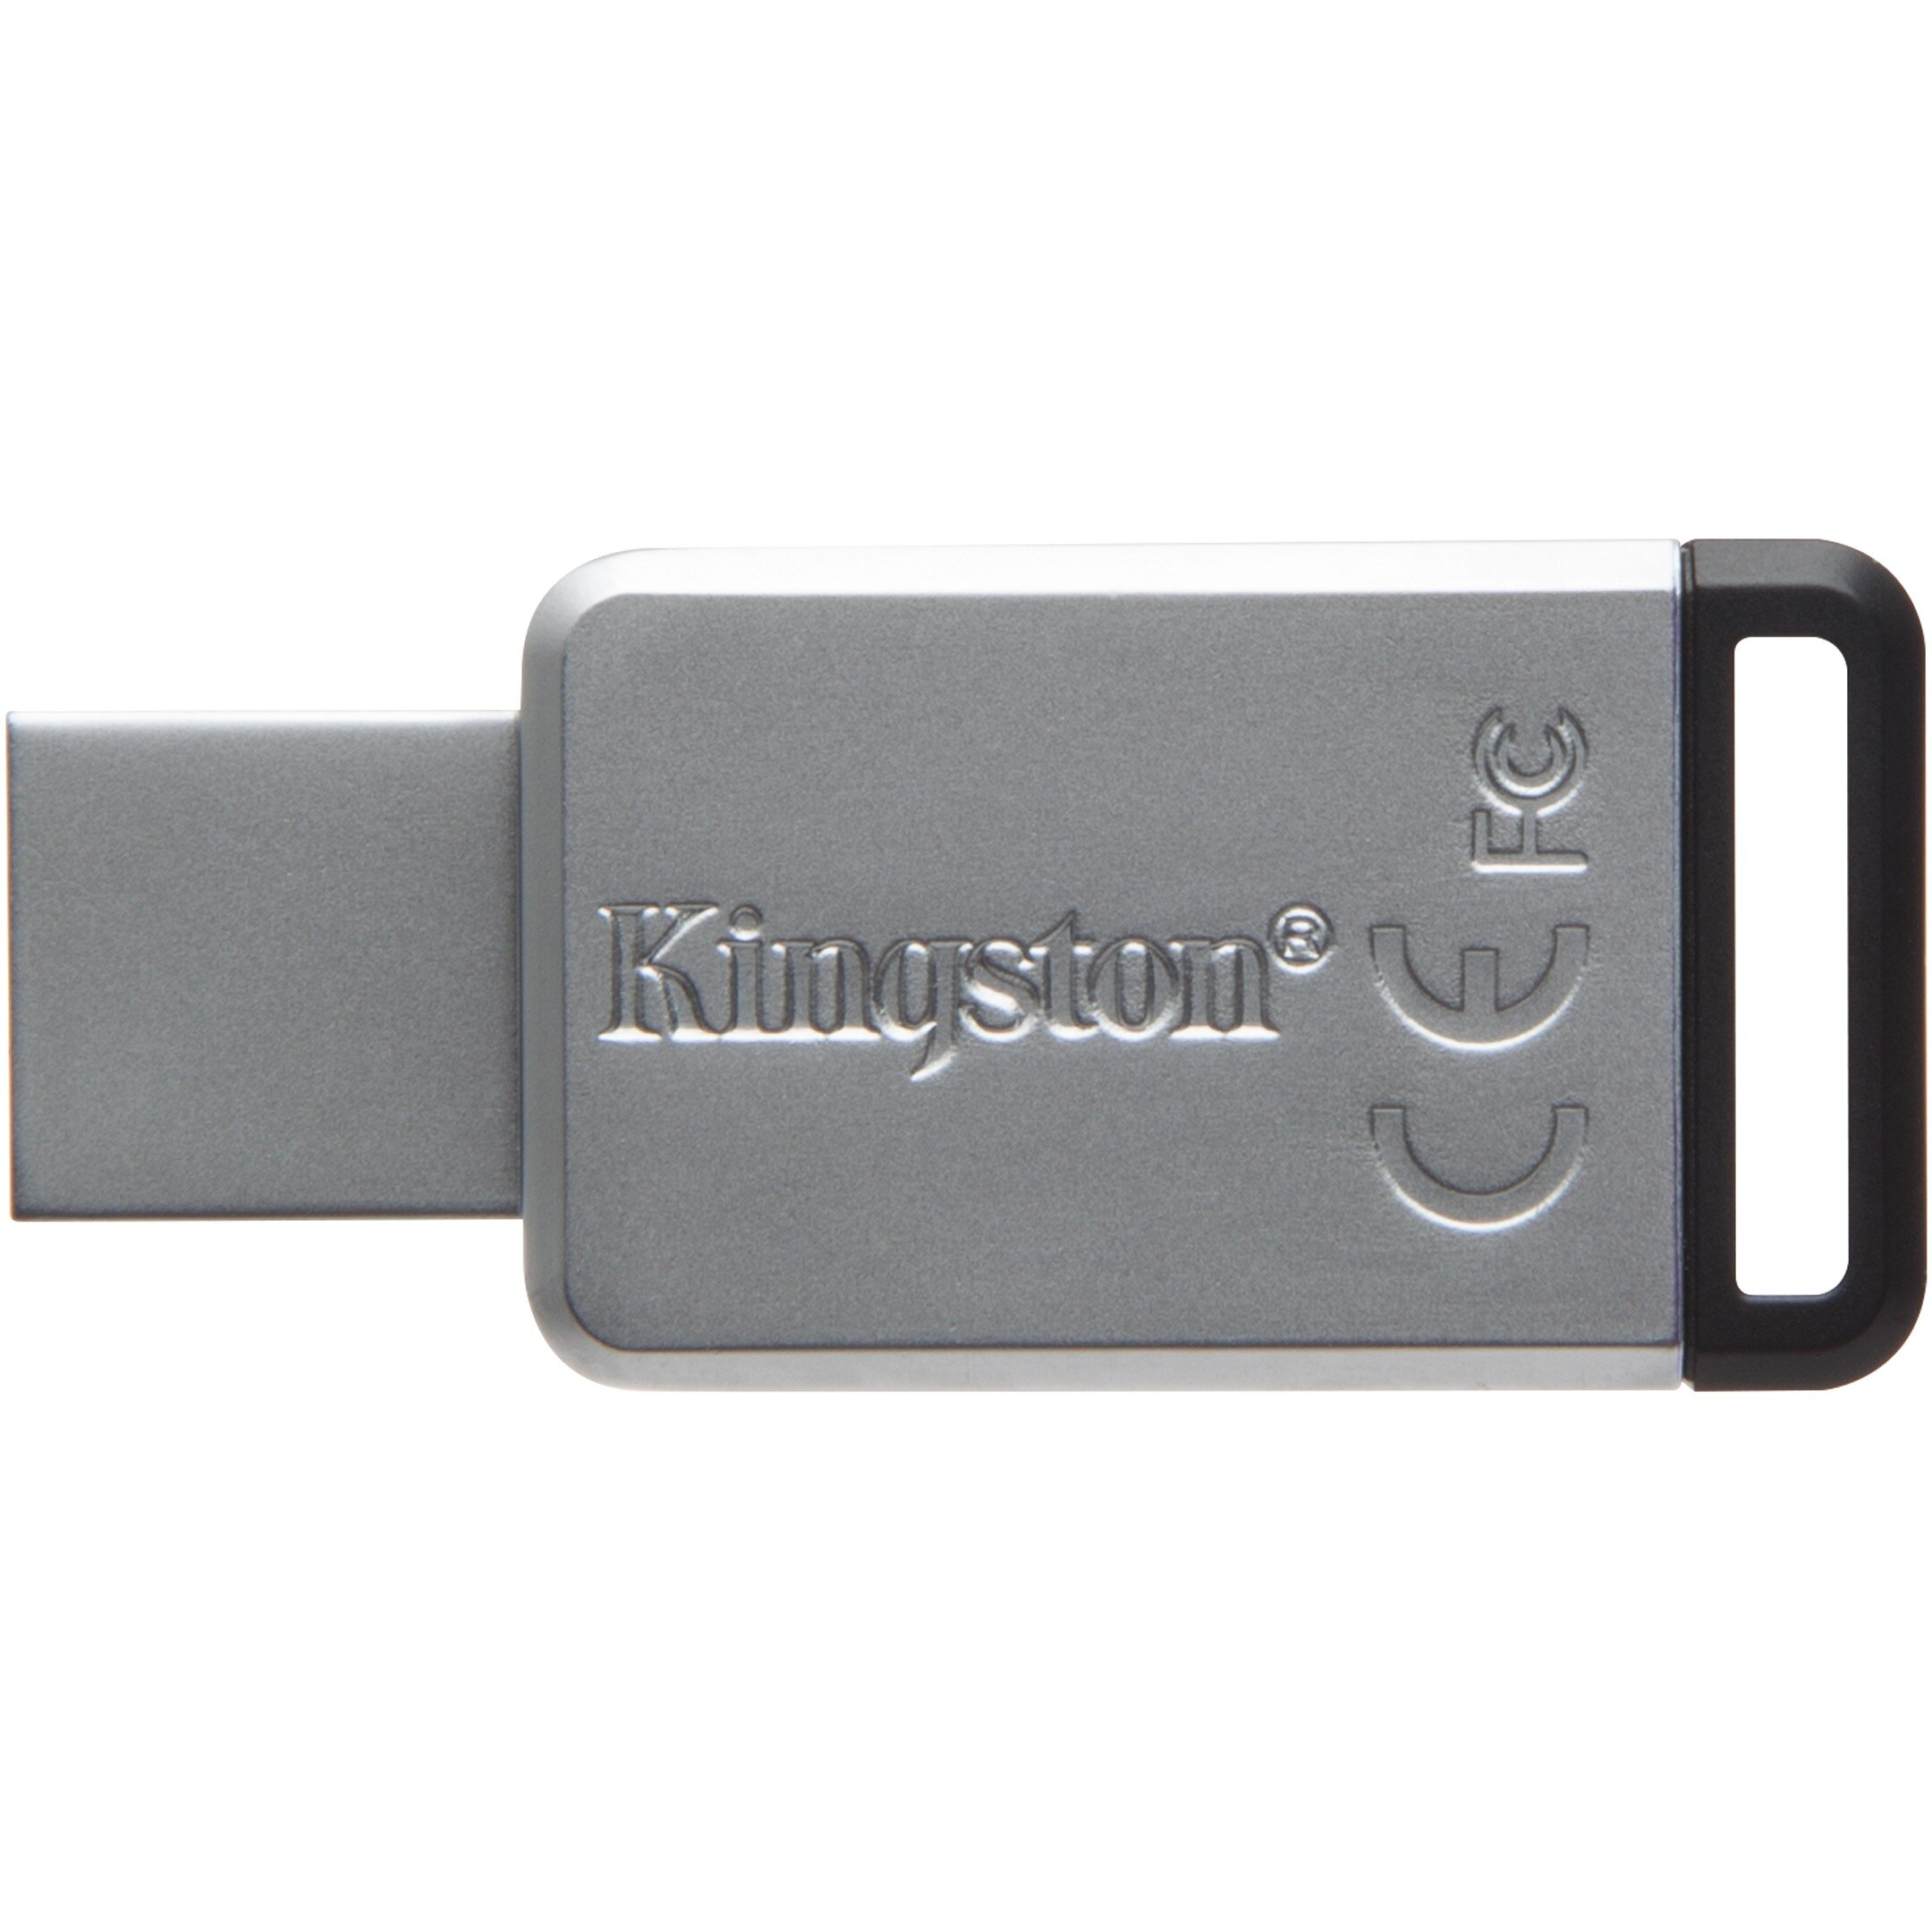 Kingston 128GB DataTraveler 50 128G DT50 USB 3.1 Gen 1 USB 3.0 110MB/s Flash Pen Thumb Drive DT50/128GB 2